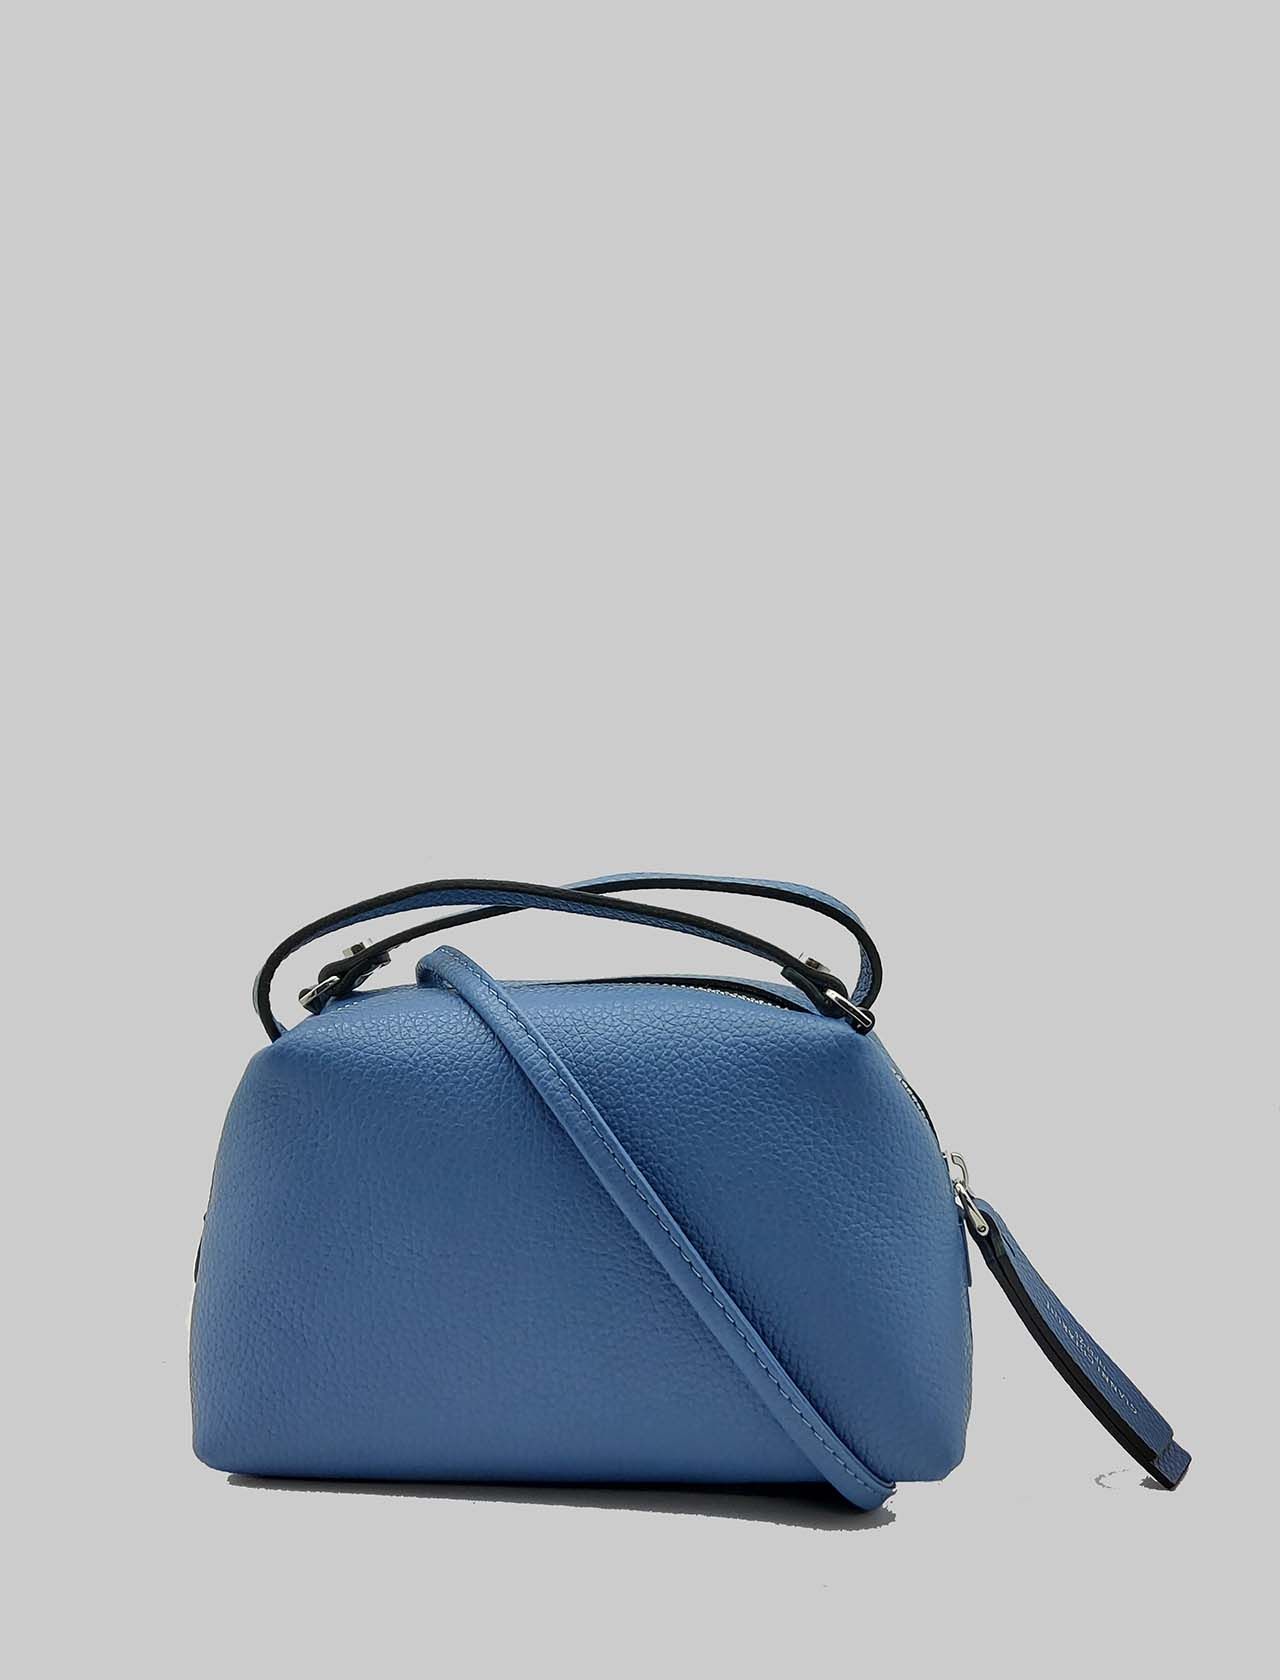 Small Alifa Woman Bag in Powder Blue Leather with Double Hand Handle and Removable Shoulder Strap Gianni Chiarini | Bags and backpacks | BS814511710